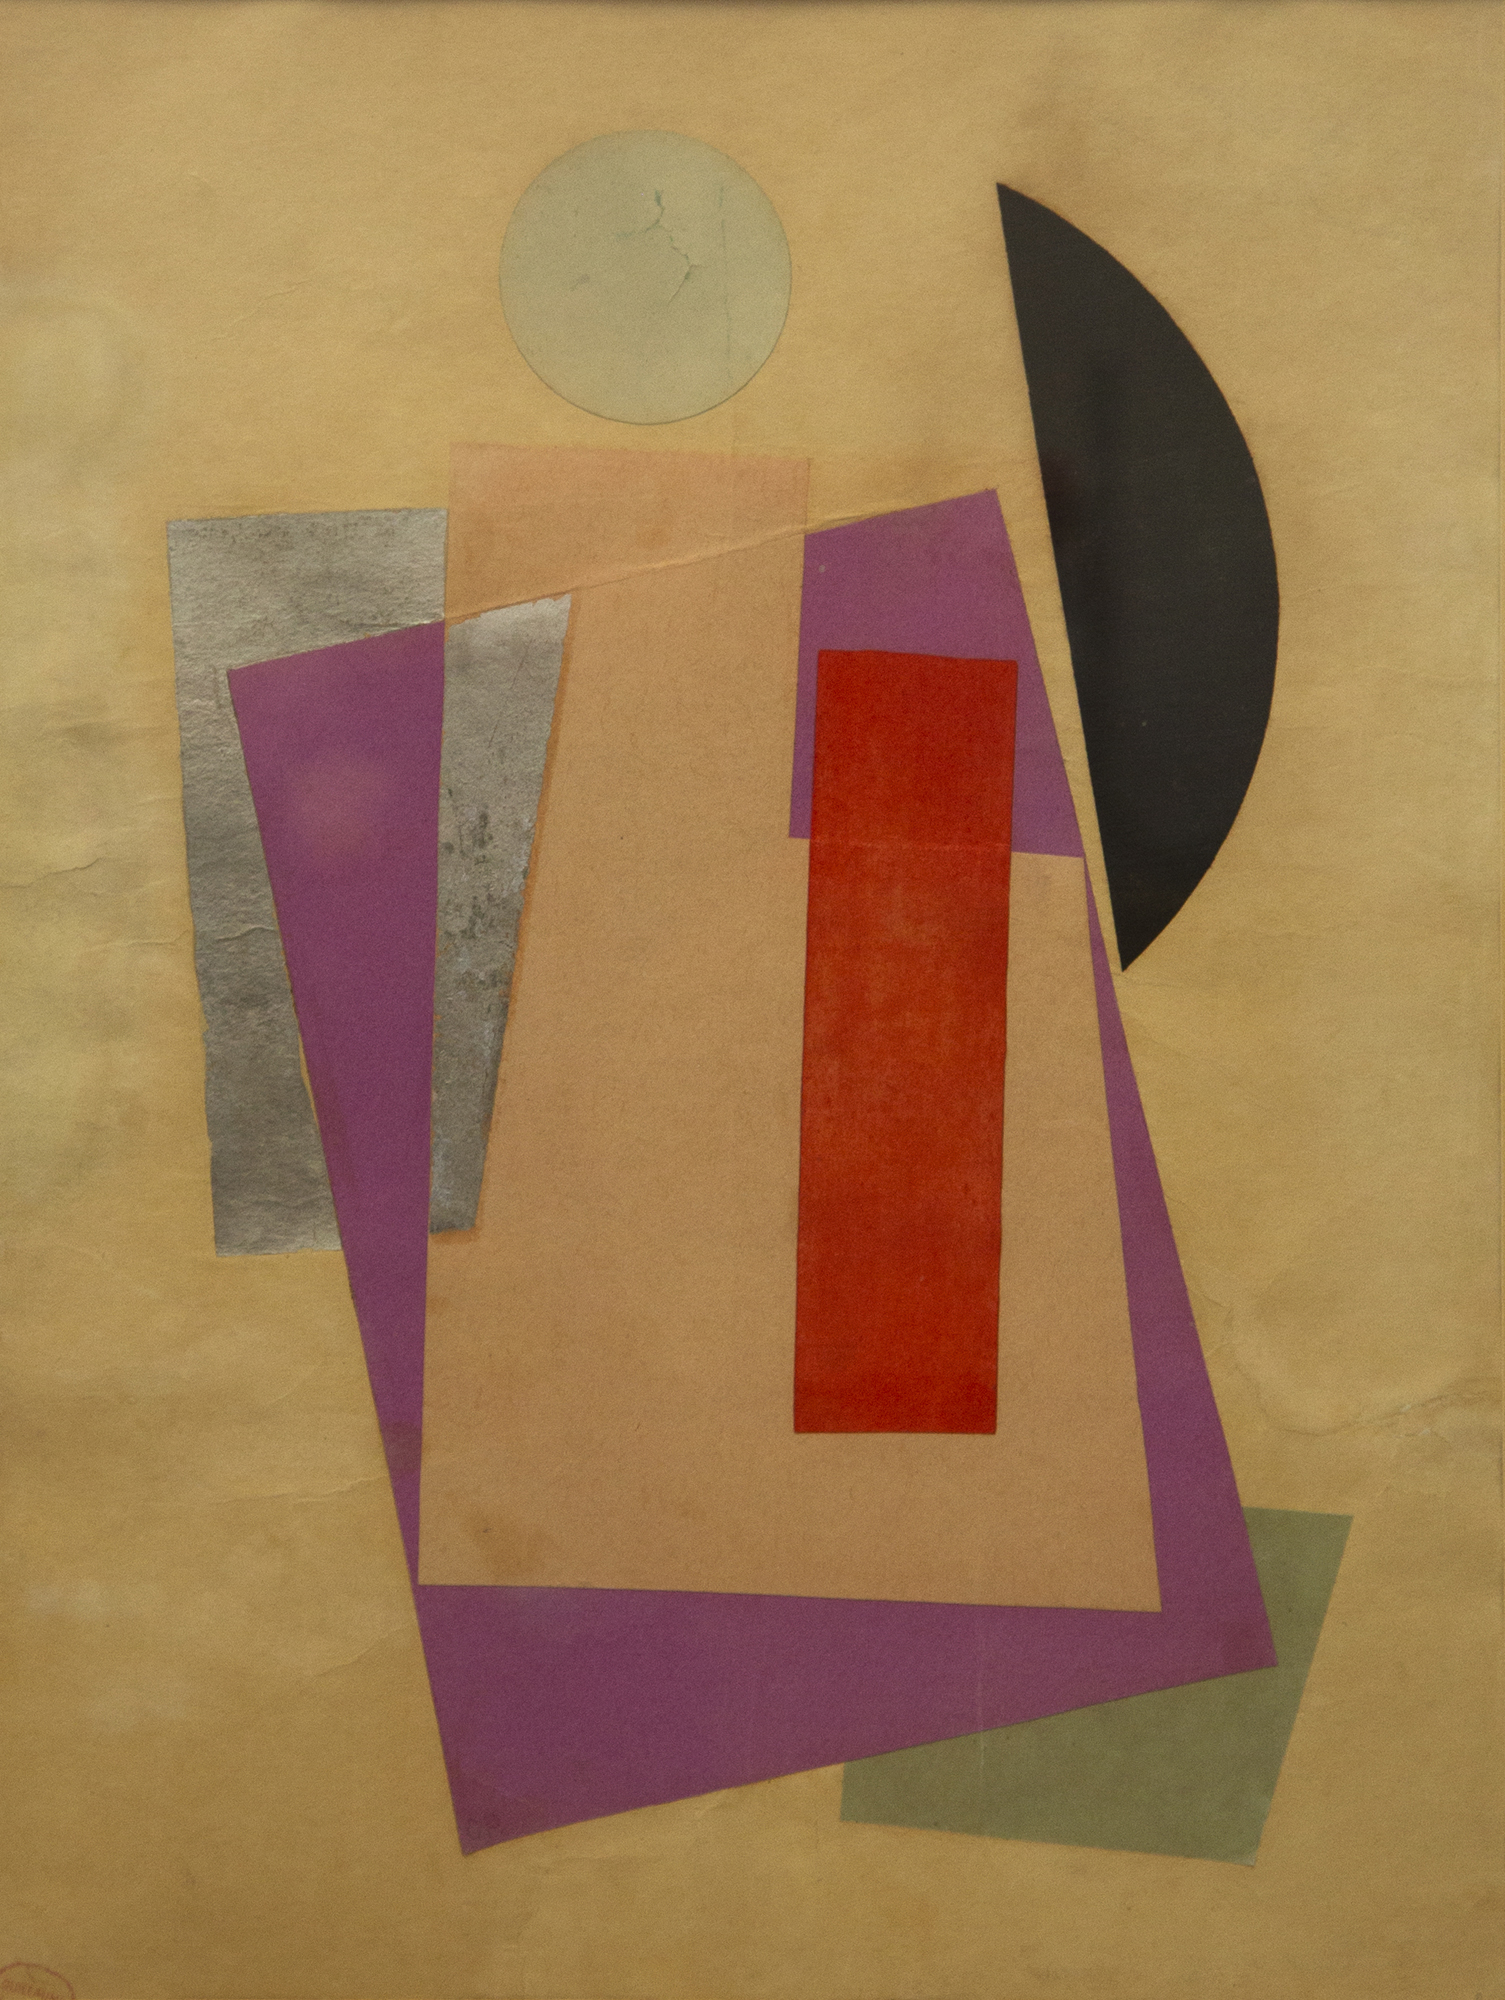 Non Objective Composition (Suprematism)